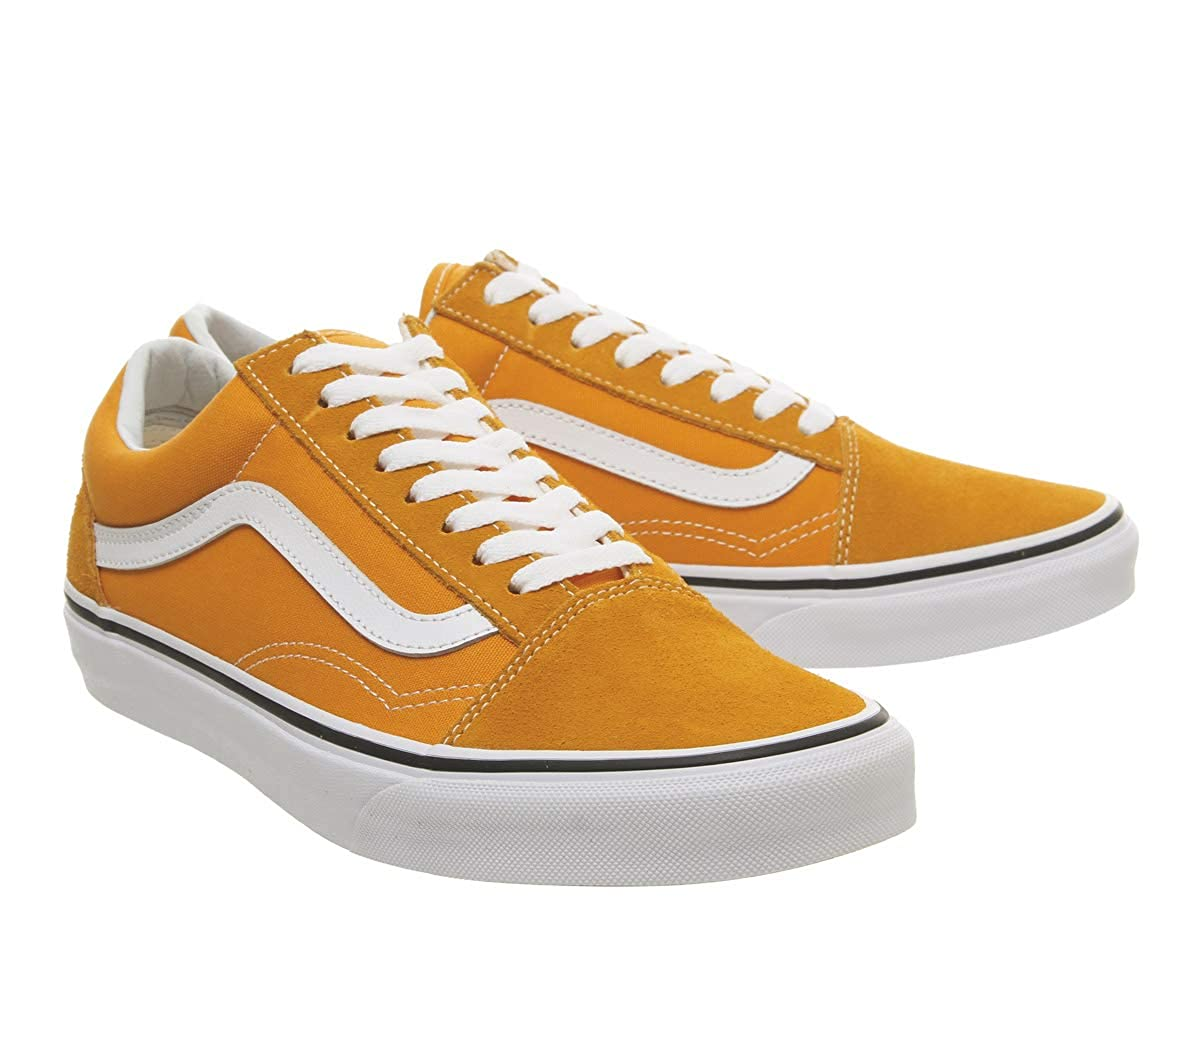 0d3afba6d4d Vans Old Skool Shoes UK 8 Dark Cheddar True White  Amazon.co.uk  Shoes    Bags